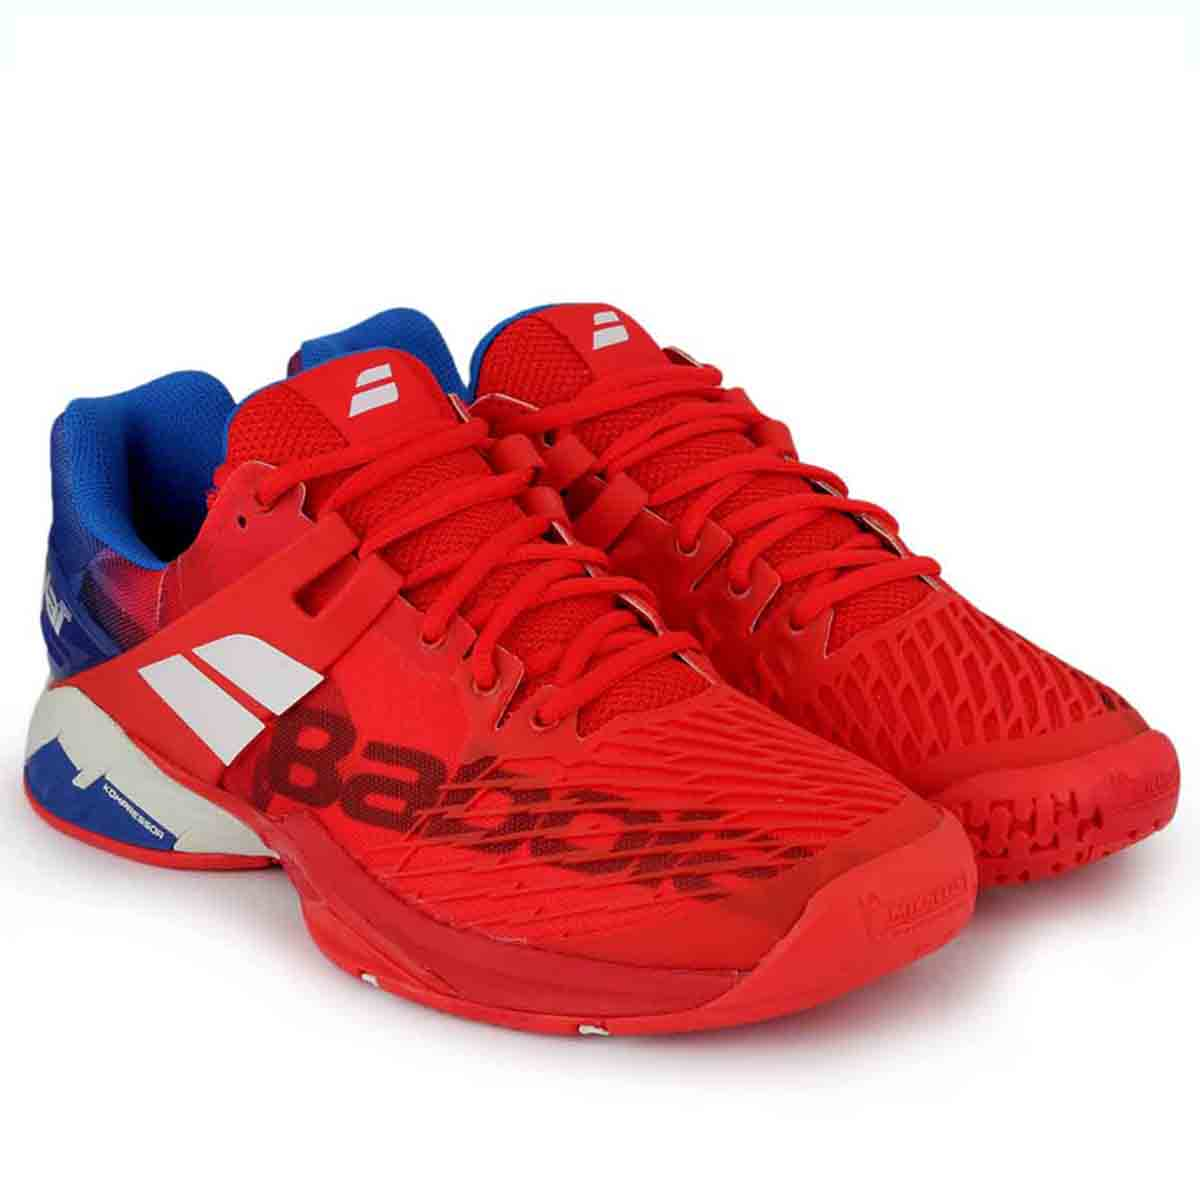 Buy Babolat Fury All Court Tennis Shoes